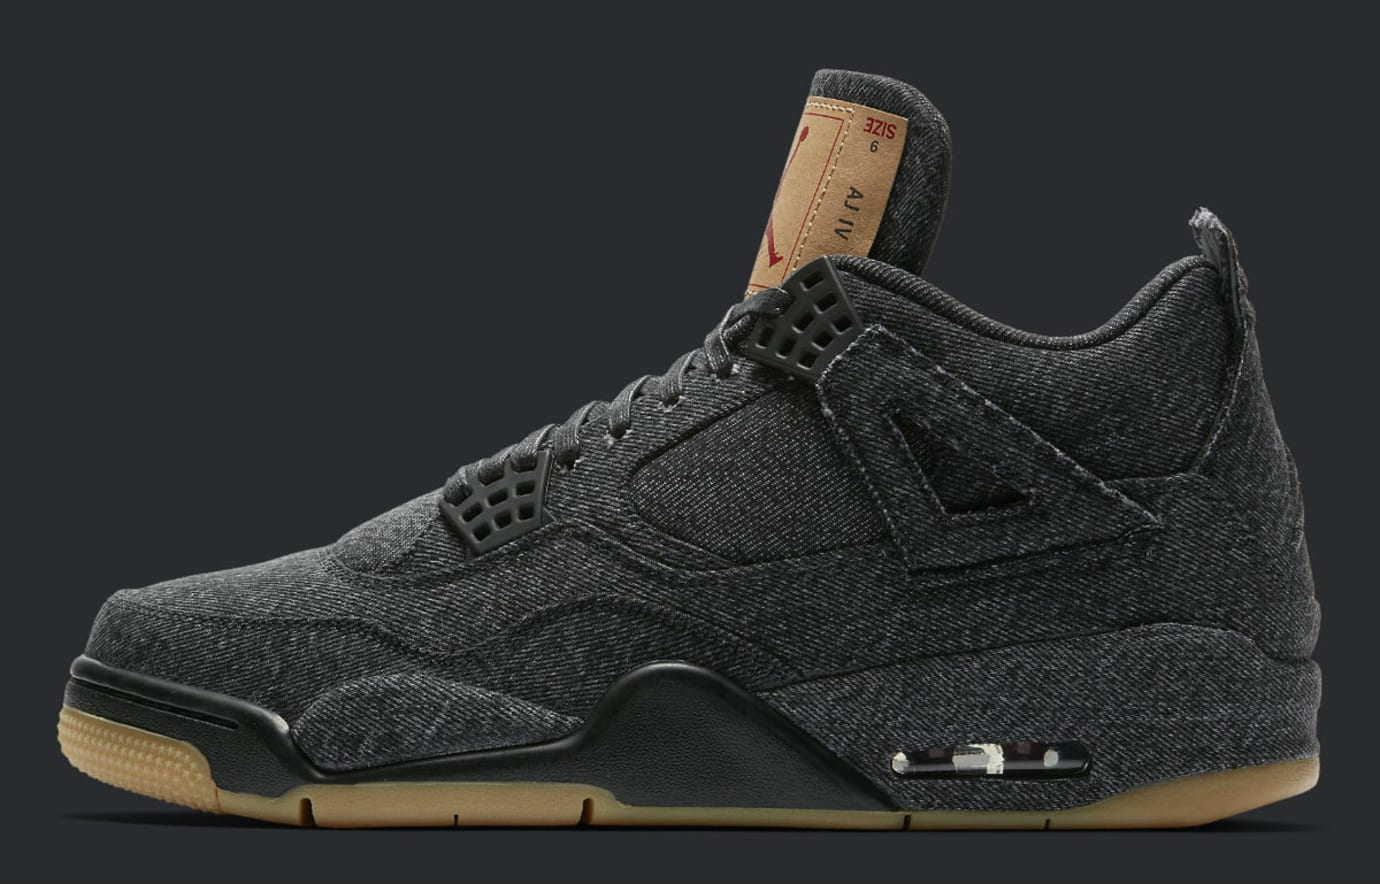 Levi's x Air Jordan 4 Black Denim Release Date AO2571-001 Profile